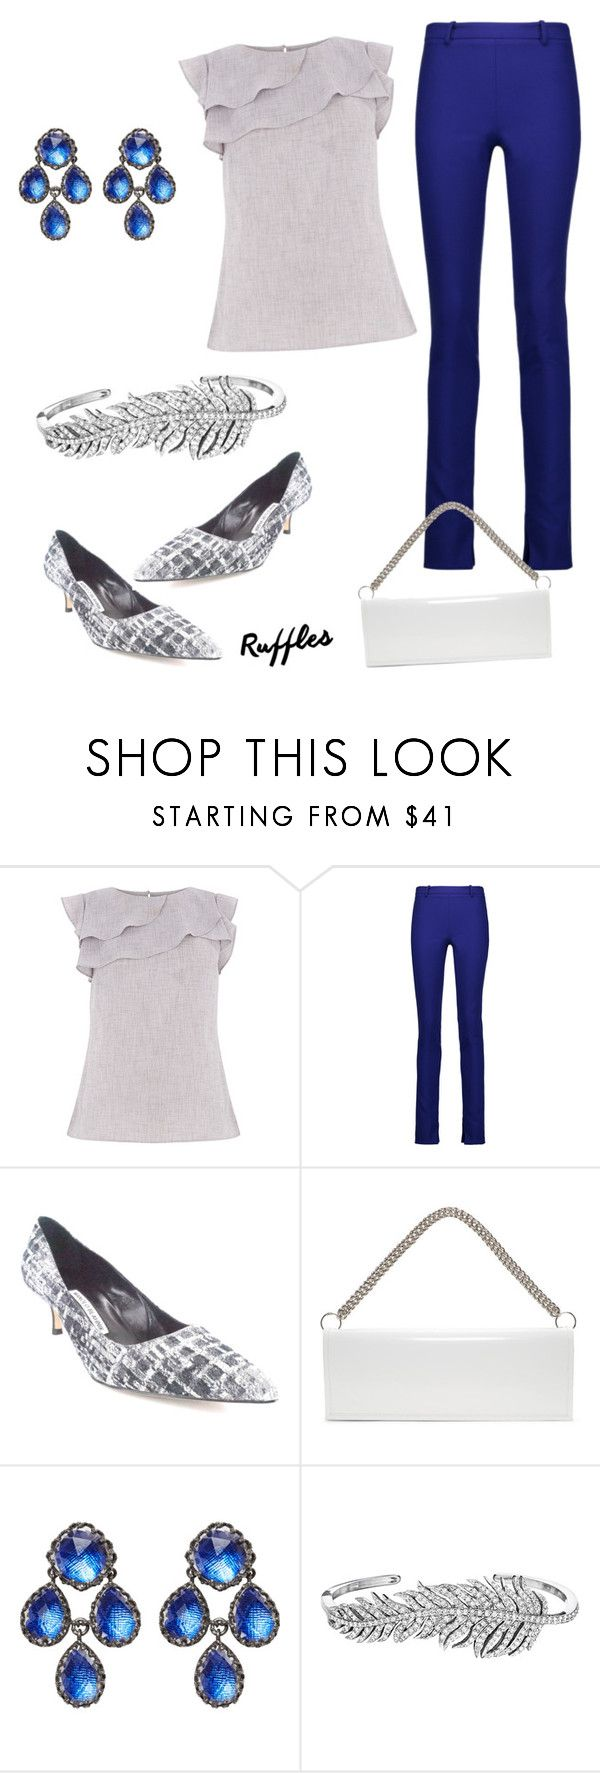 """Untitled #362"" by wallaceschade ❤ liked on Polyvore featuring Roland Mouret, Manolo Blahnik, Vetements, Larkspur & Hawk and Penny Preville"